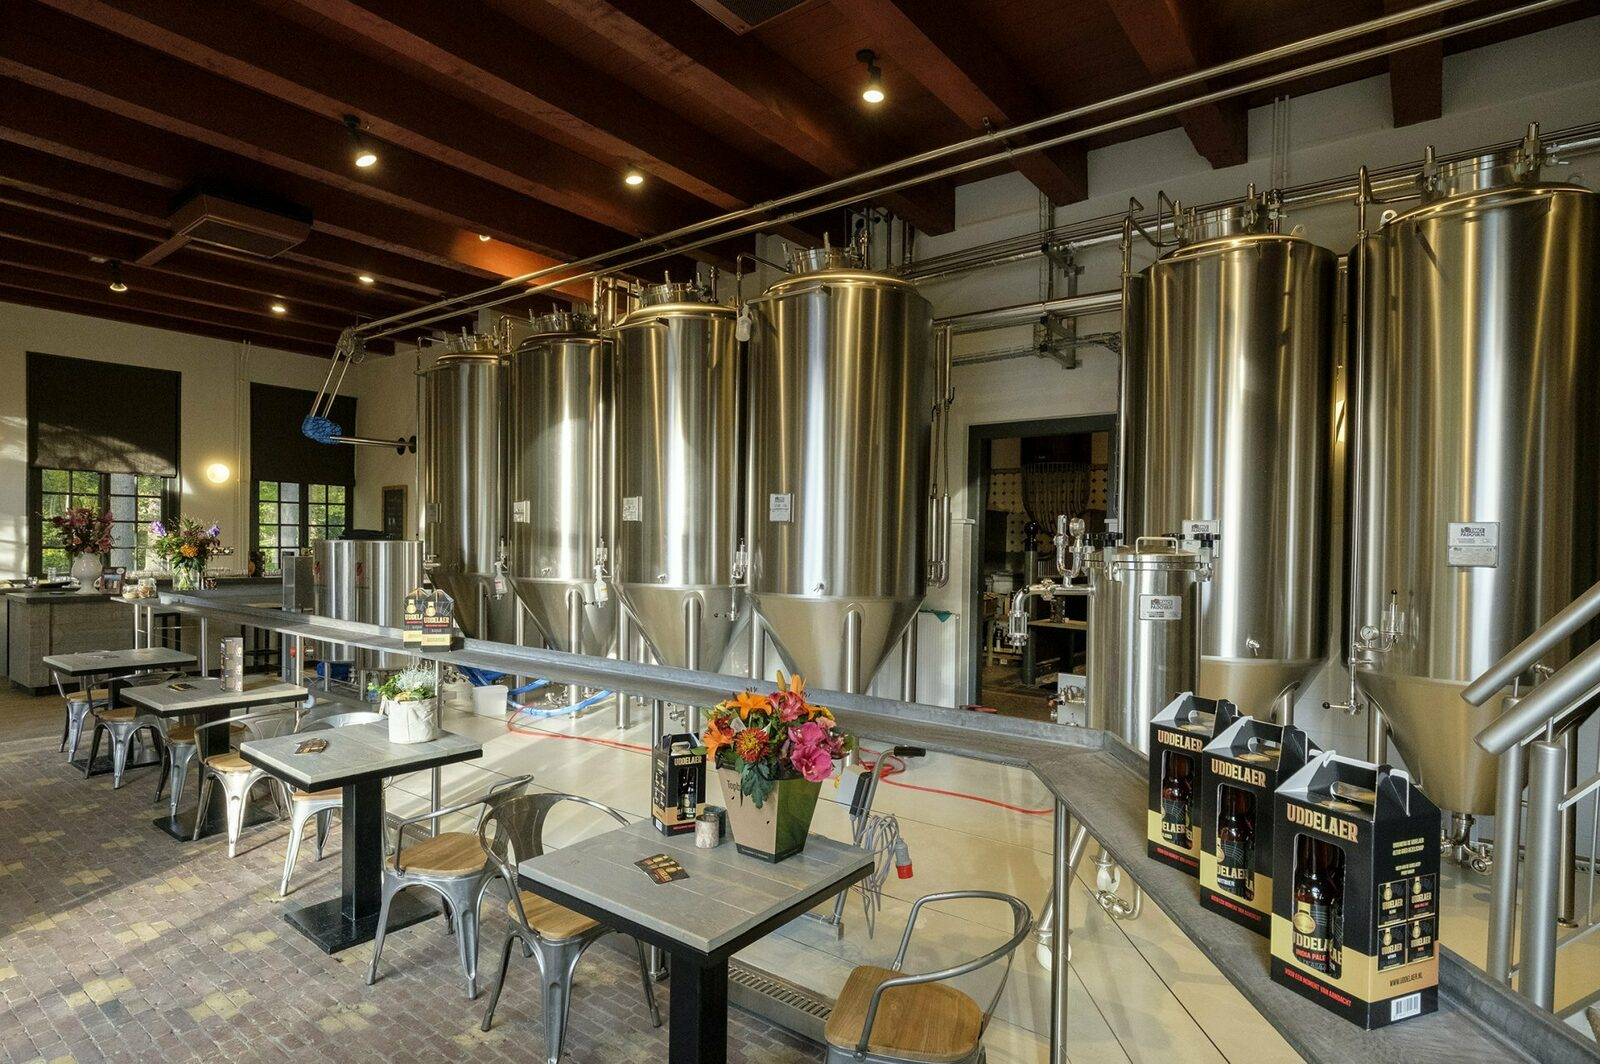 🍺 Guided tour and beer tasting at Brewery de Uddelaer